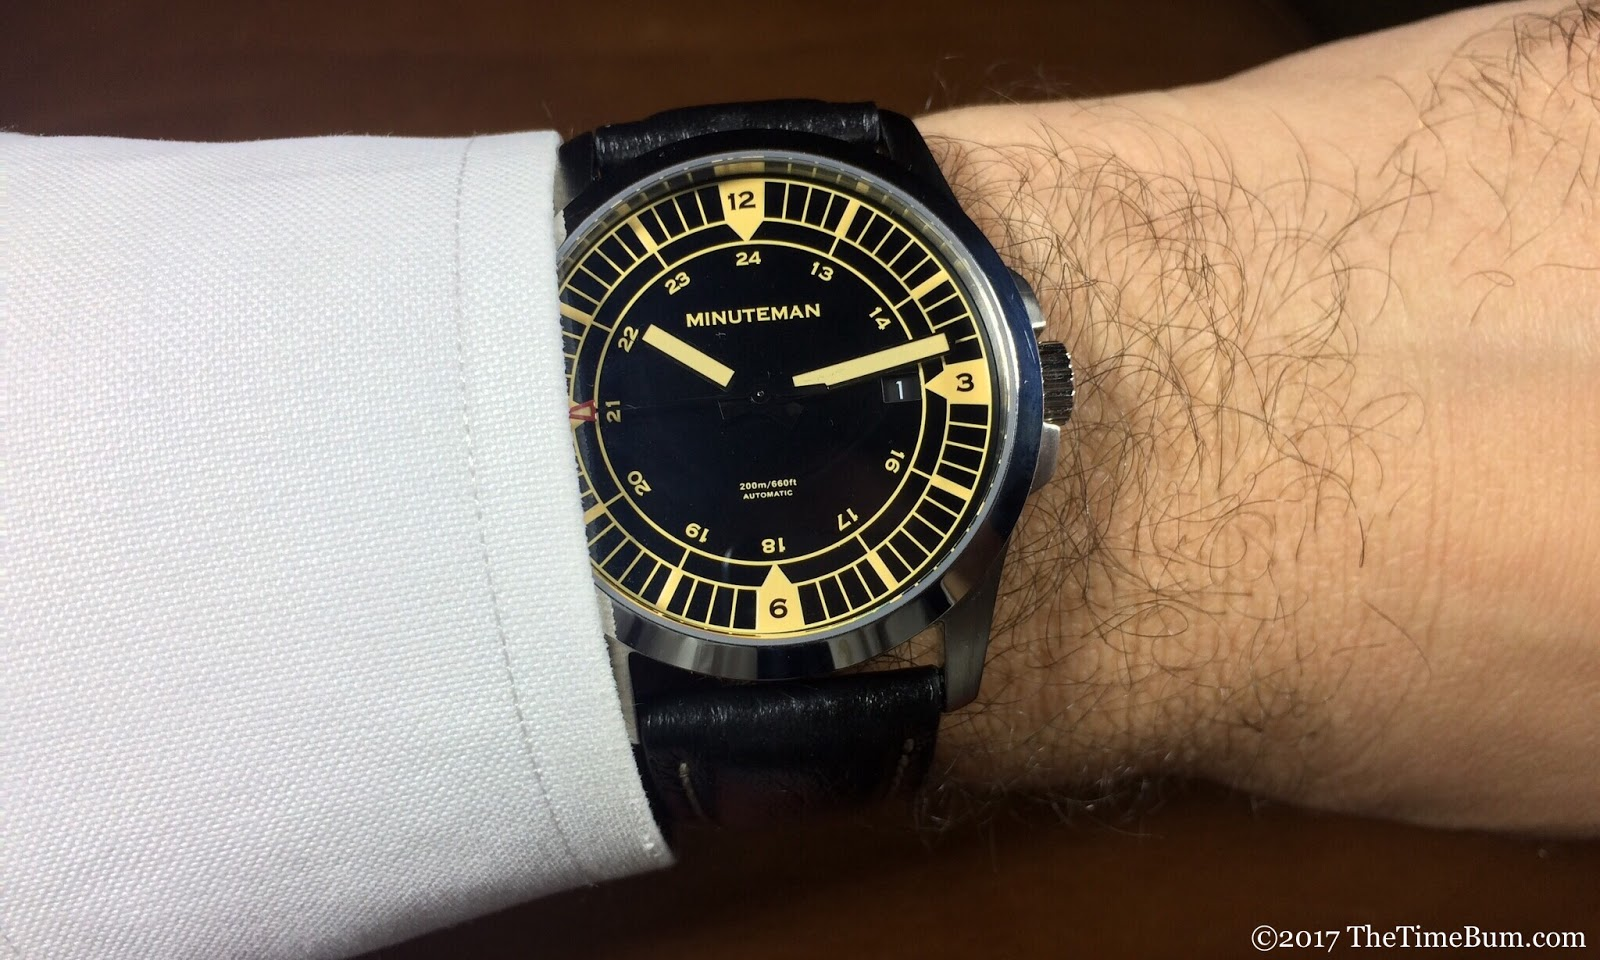 Minuteman Darby brushed wrist shot